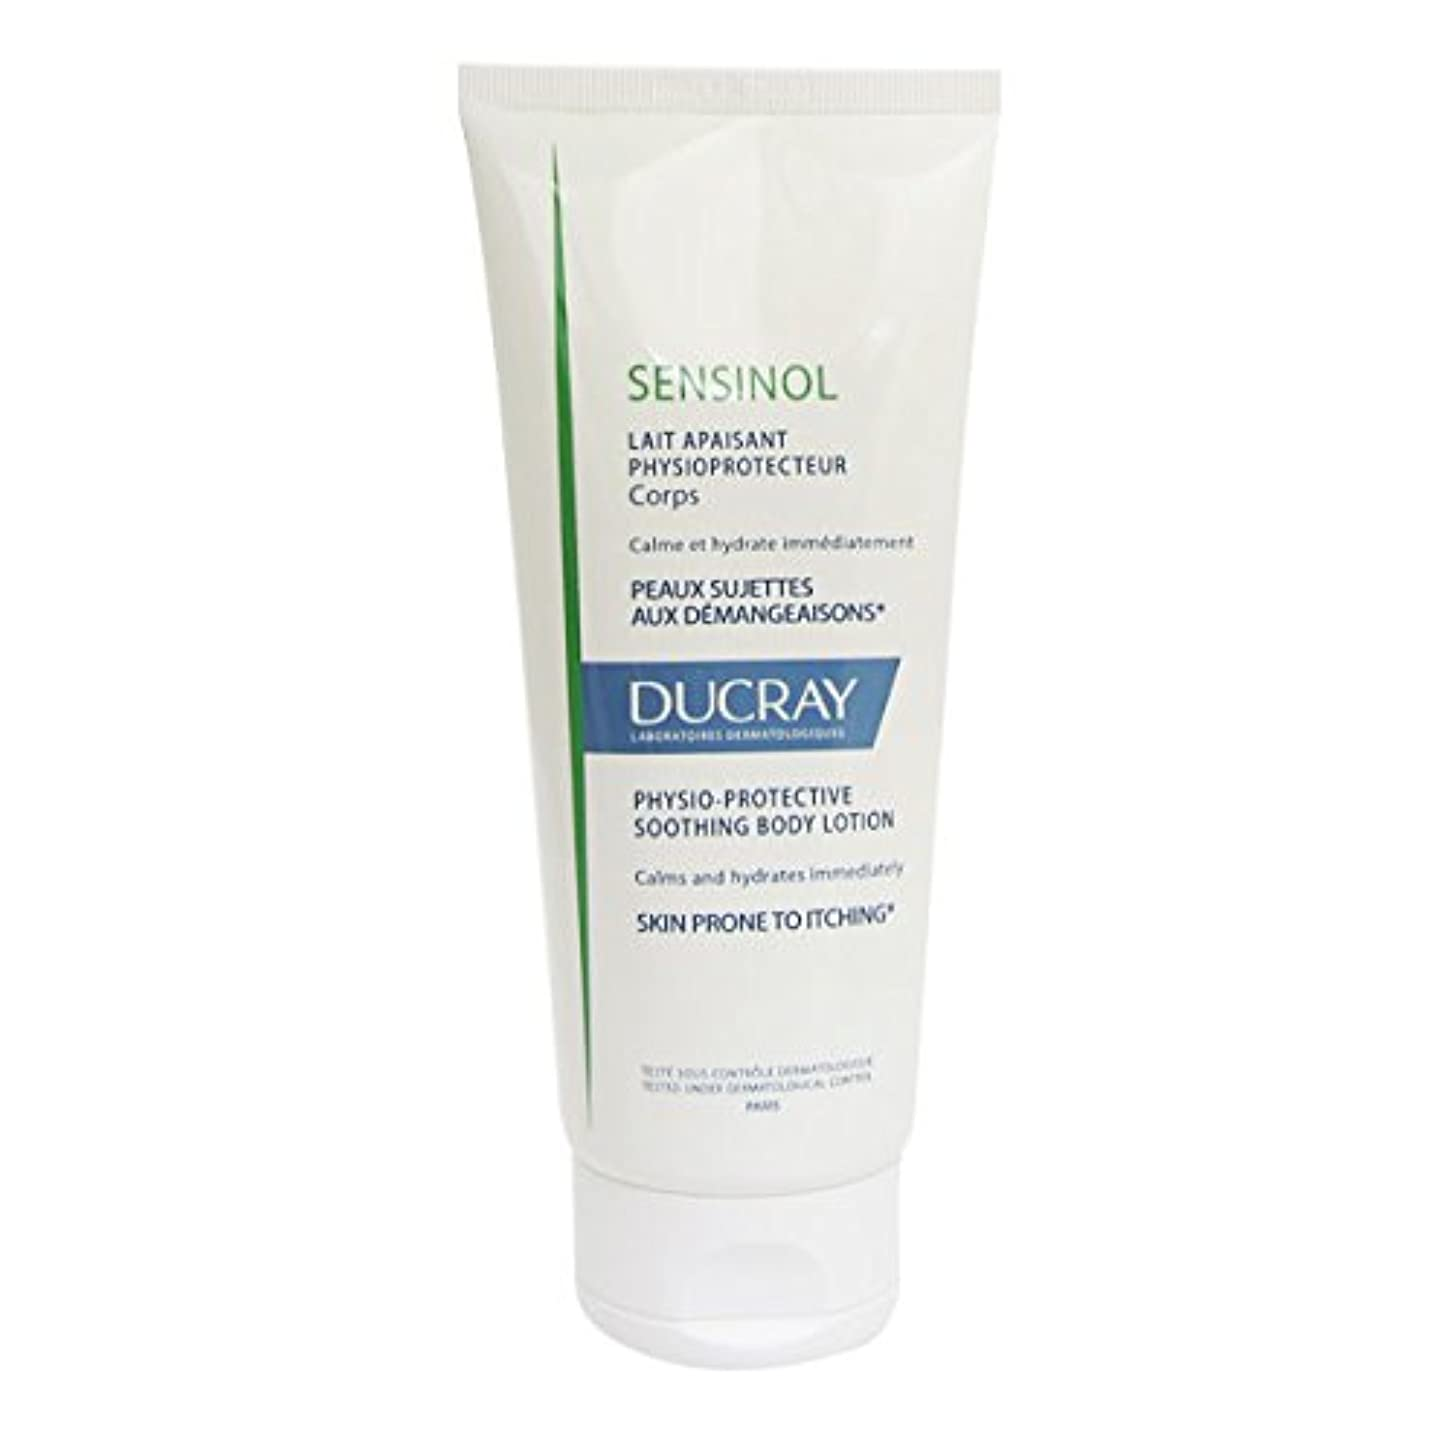 Ducray Sensinol Soothing Body Milk 200ml [並行輸入品]